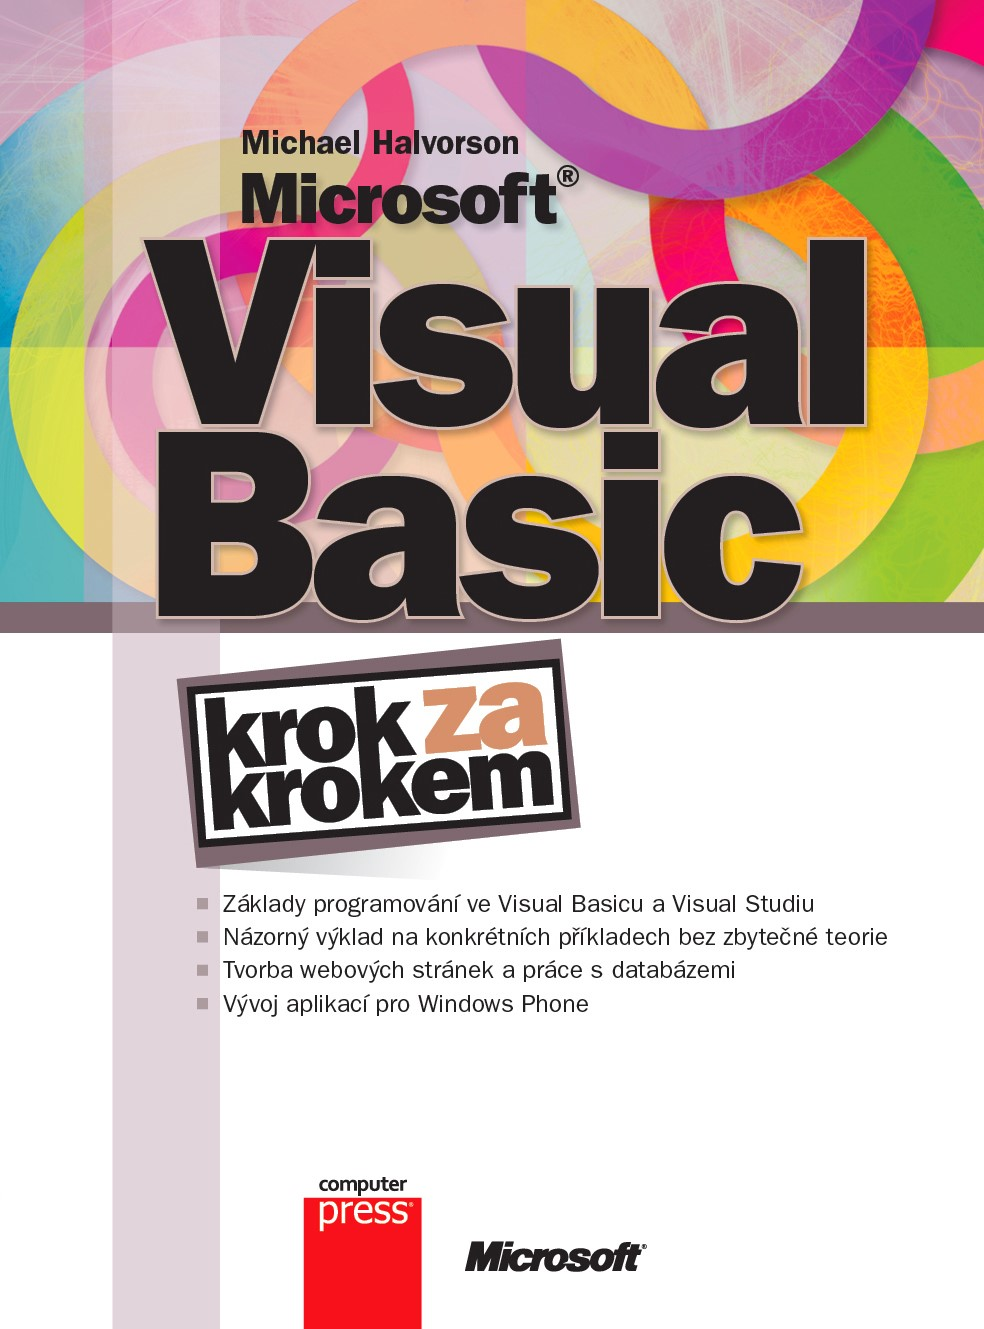 Microsoft Visual Basic | Michael Halvorson